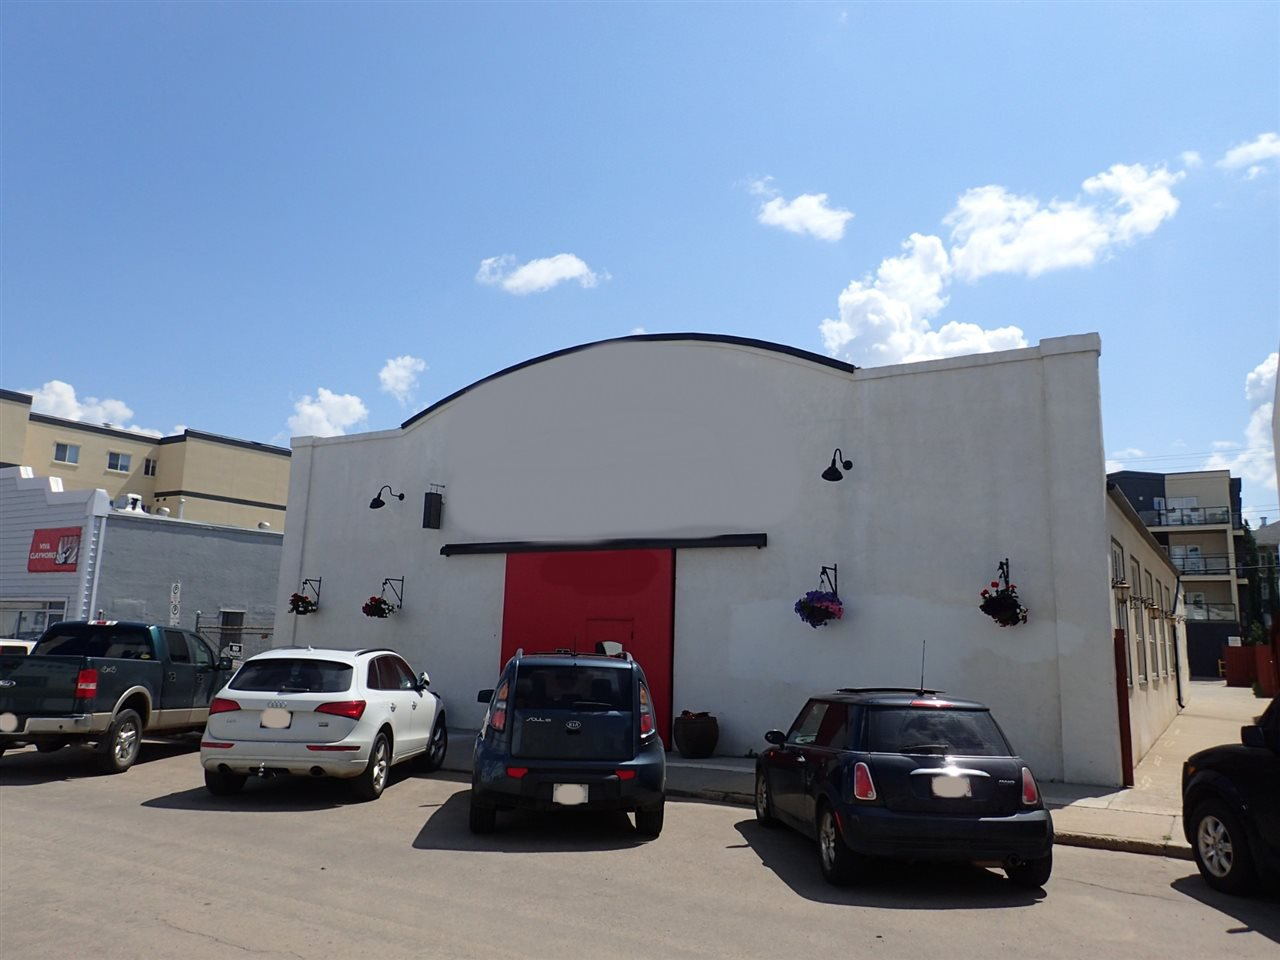 Main Photo: 0 0 in Edmonton: Zone 17 Retail for sale : MLS®# E4164019